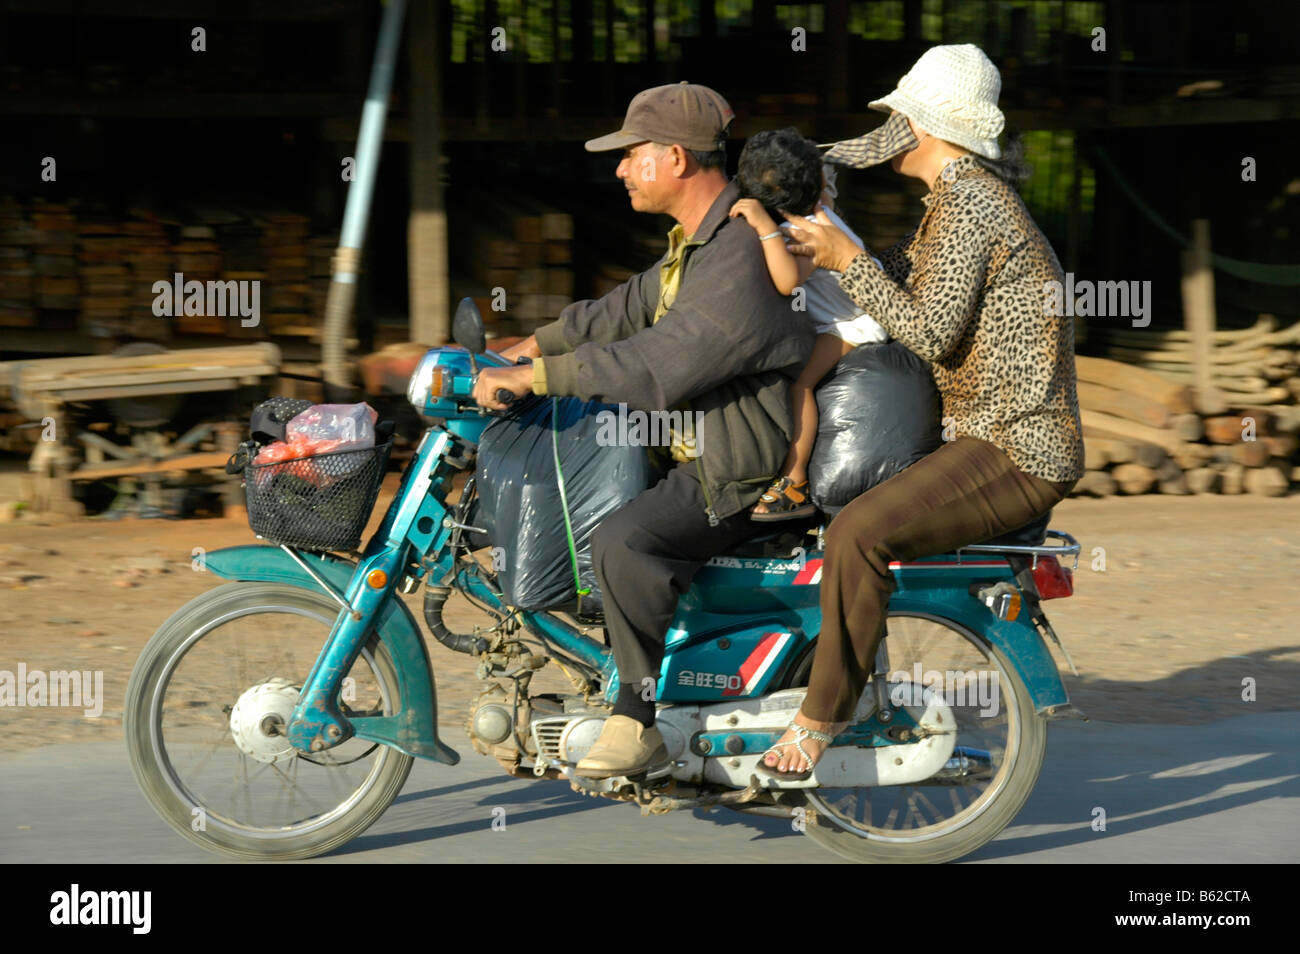 Crammed full motocycle with people and luggage, near Phnom Penh, Cambodia, Southeast Asia Stock Photo